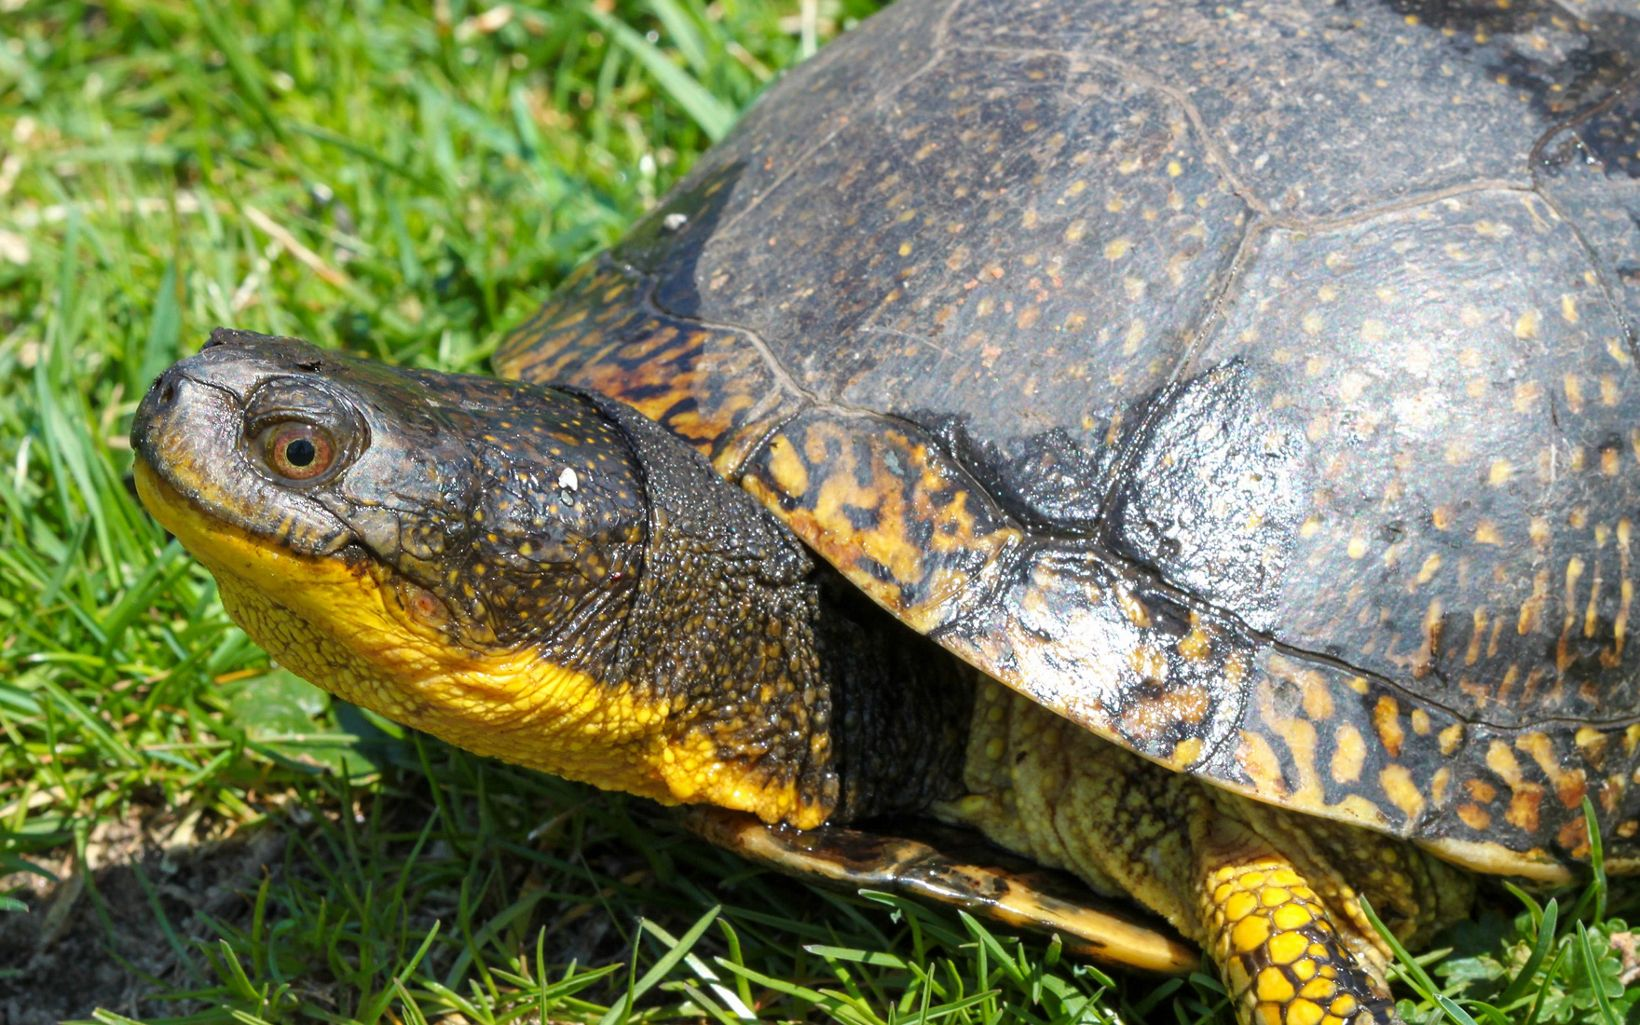 A turtle's head with a bright yellow neck and the front part of it's shell takes up the frame of the photo.